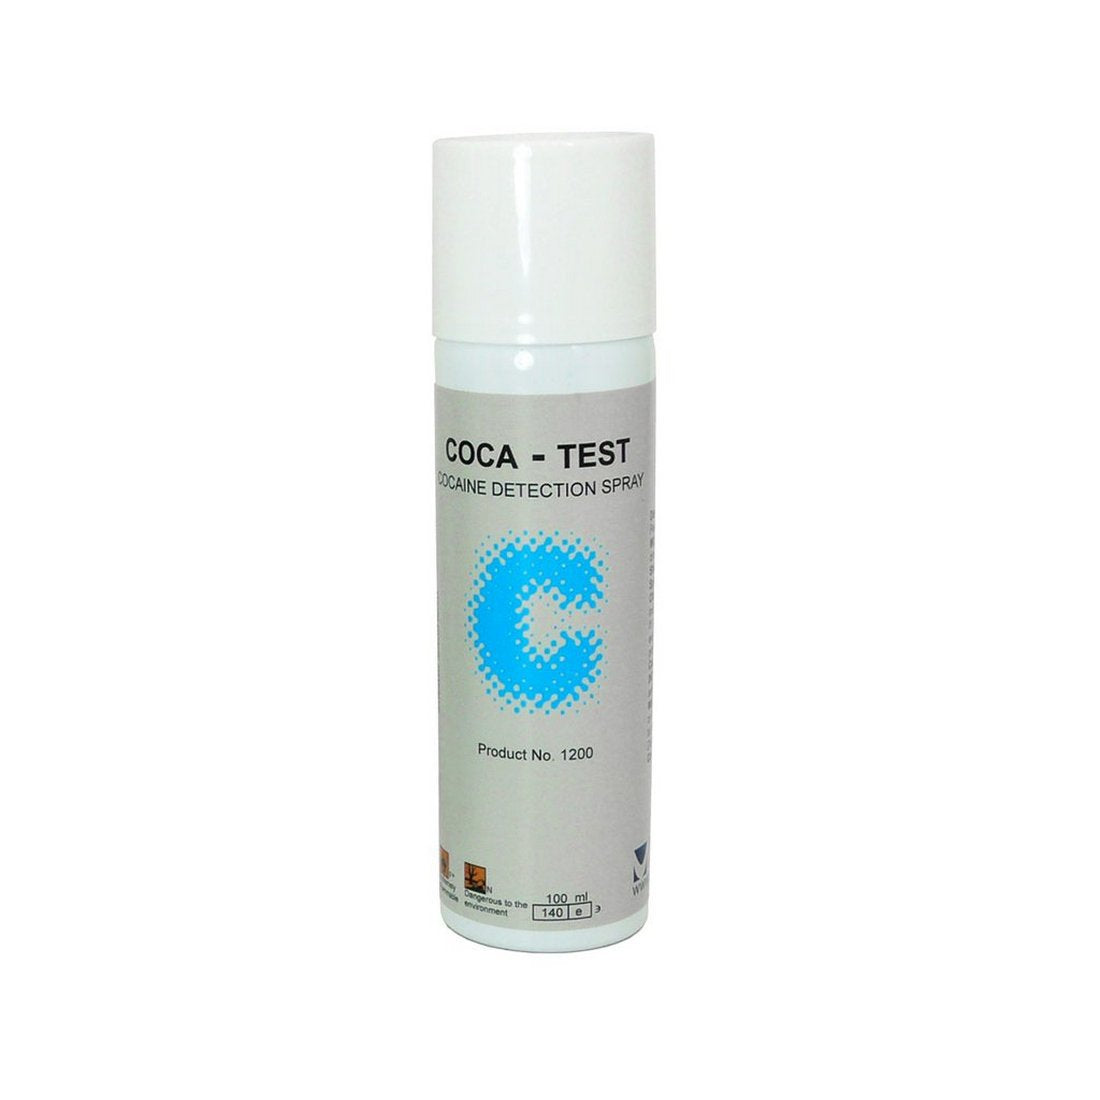 Mistral 1200 Coca-Test (Regular) Drug Detection Aerosol